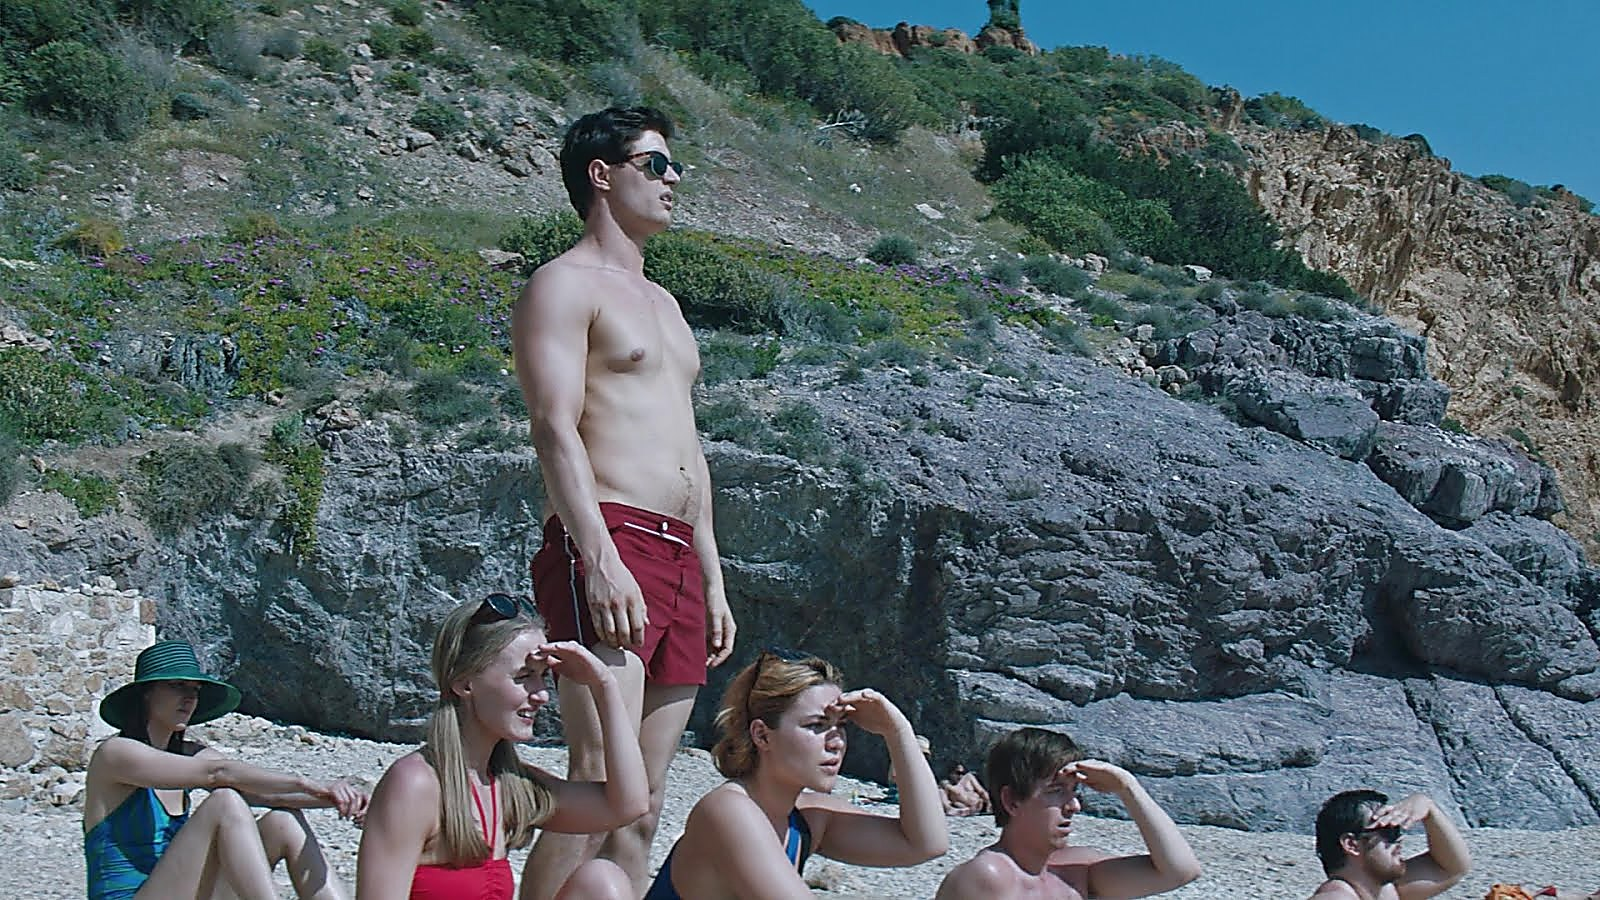 Max Irons latest sexy shirtless scene October 29, 2018, 6am